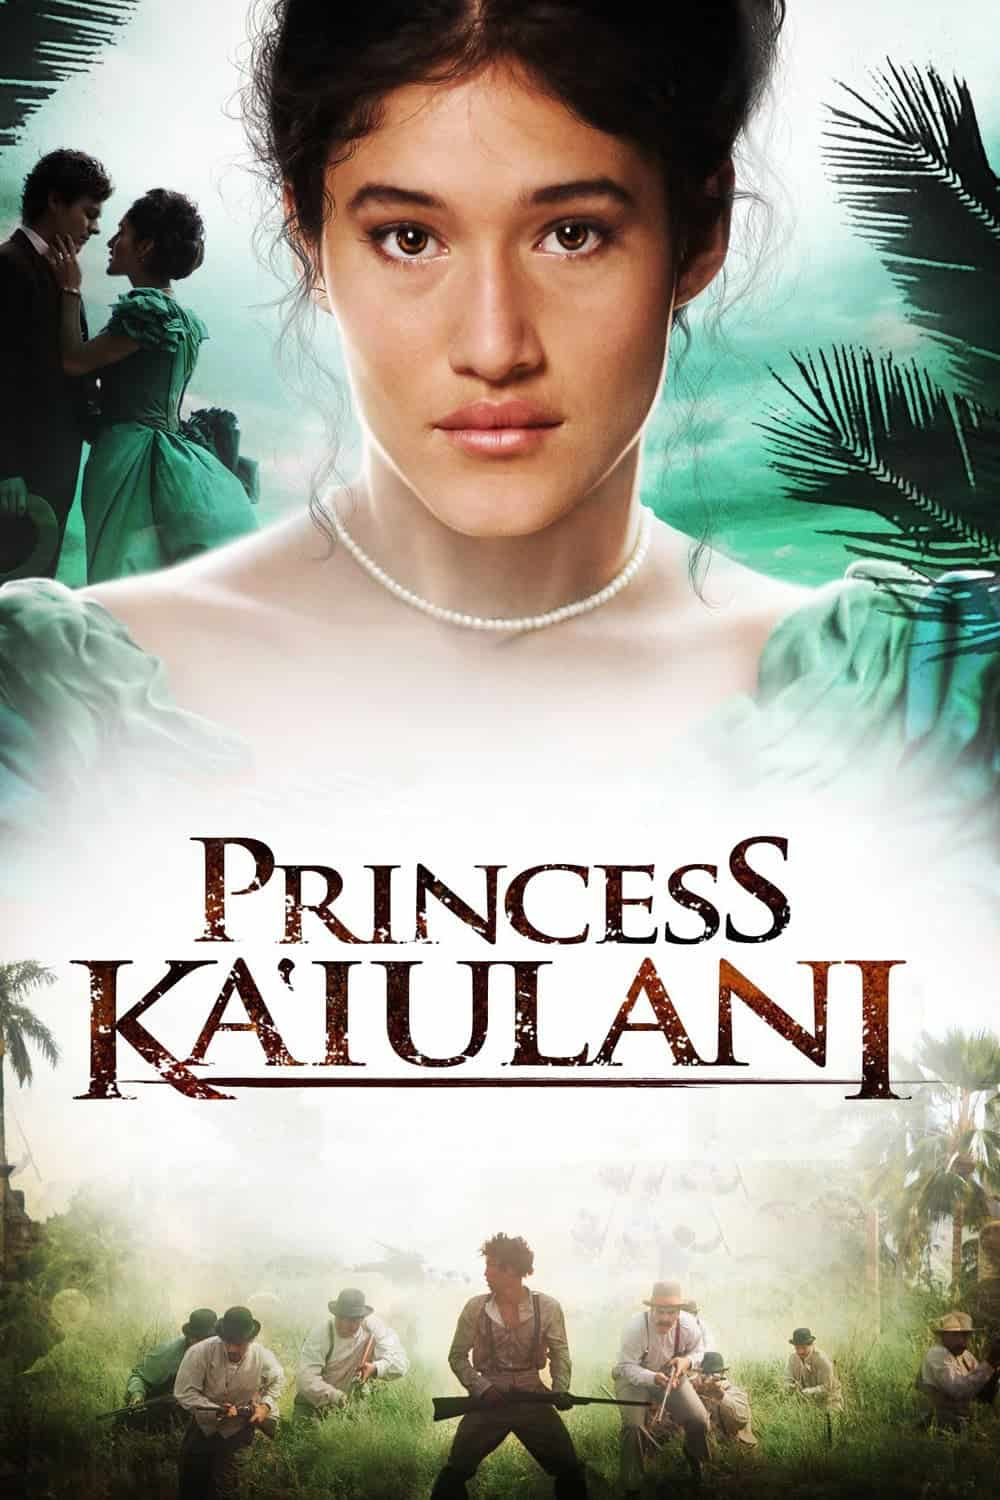 Princess Kaiulani, 2009